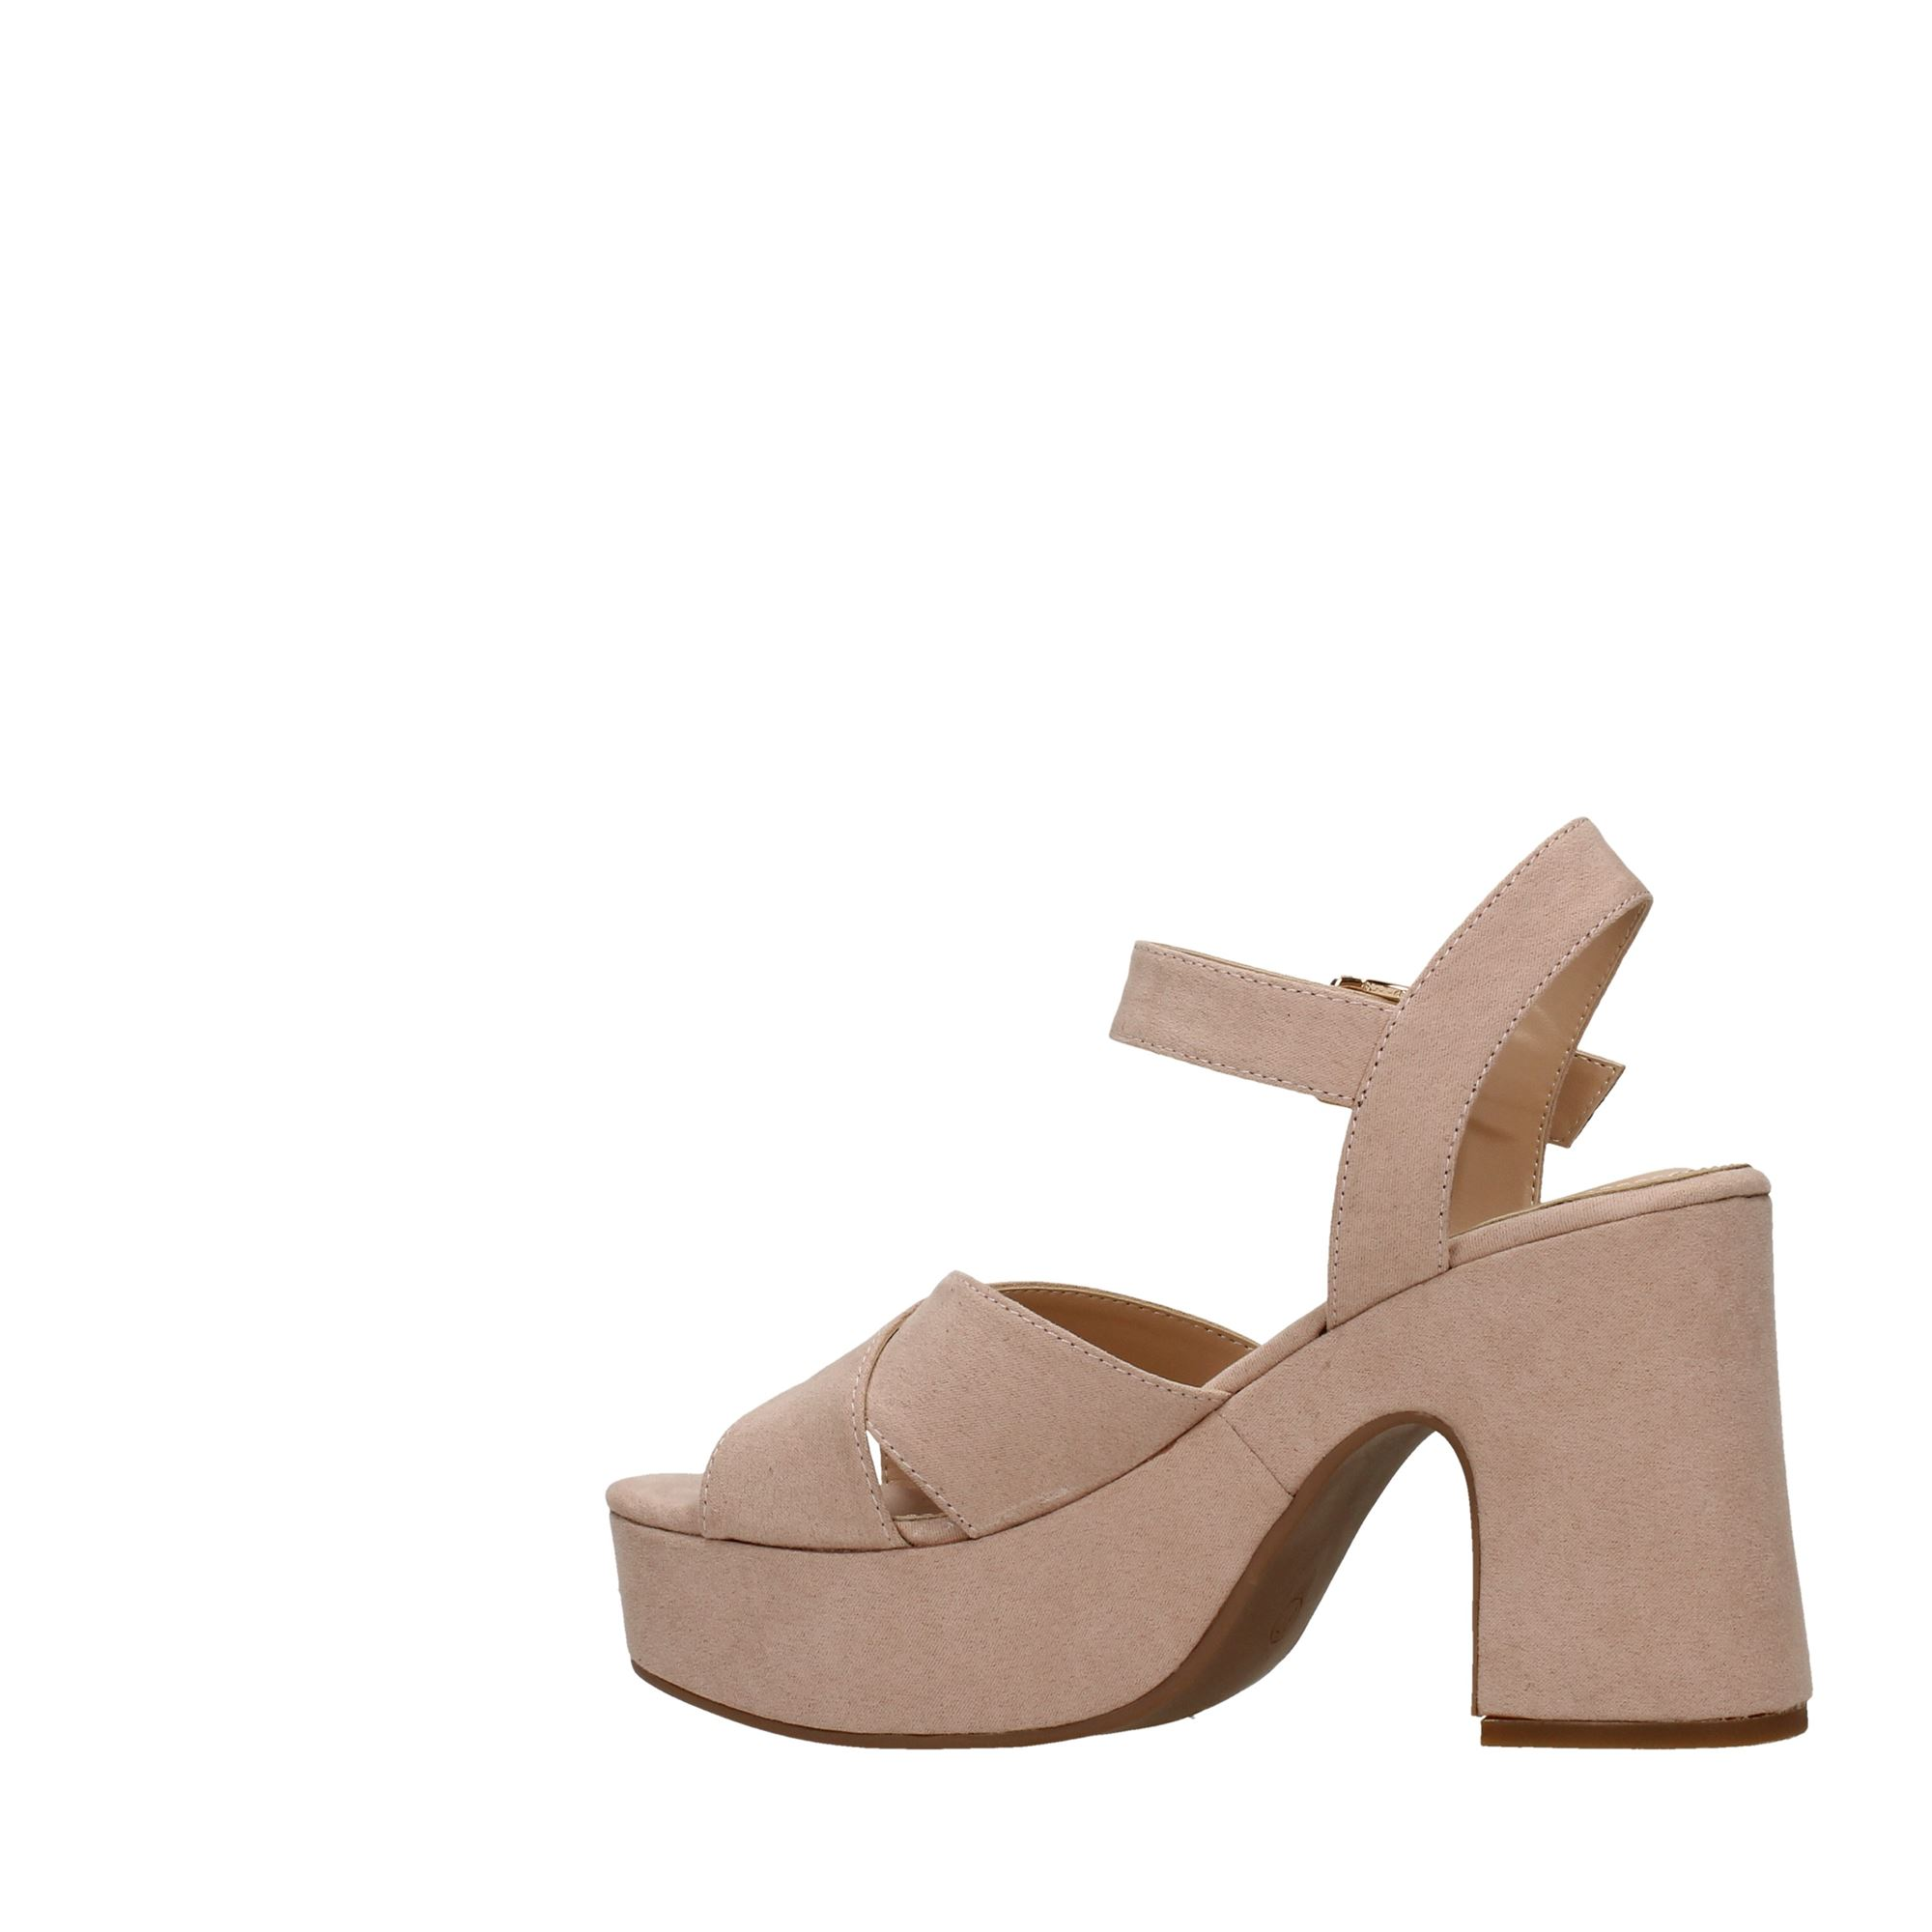 Tata Italia Shoes Woman Sandali Nude DS735-12